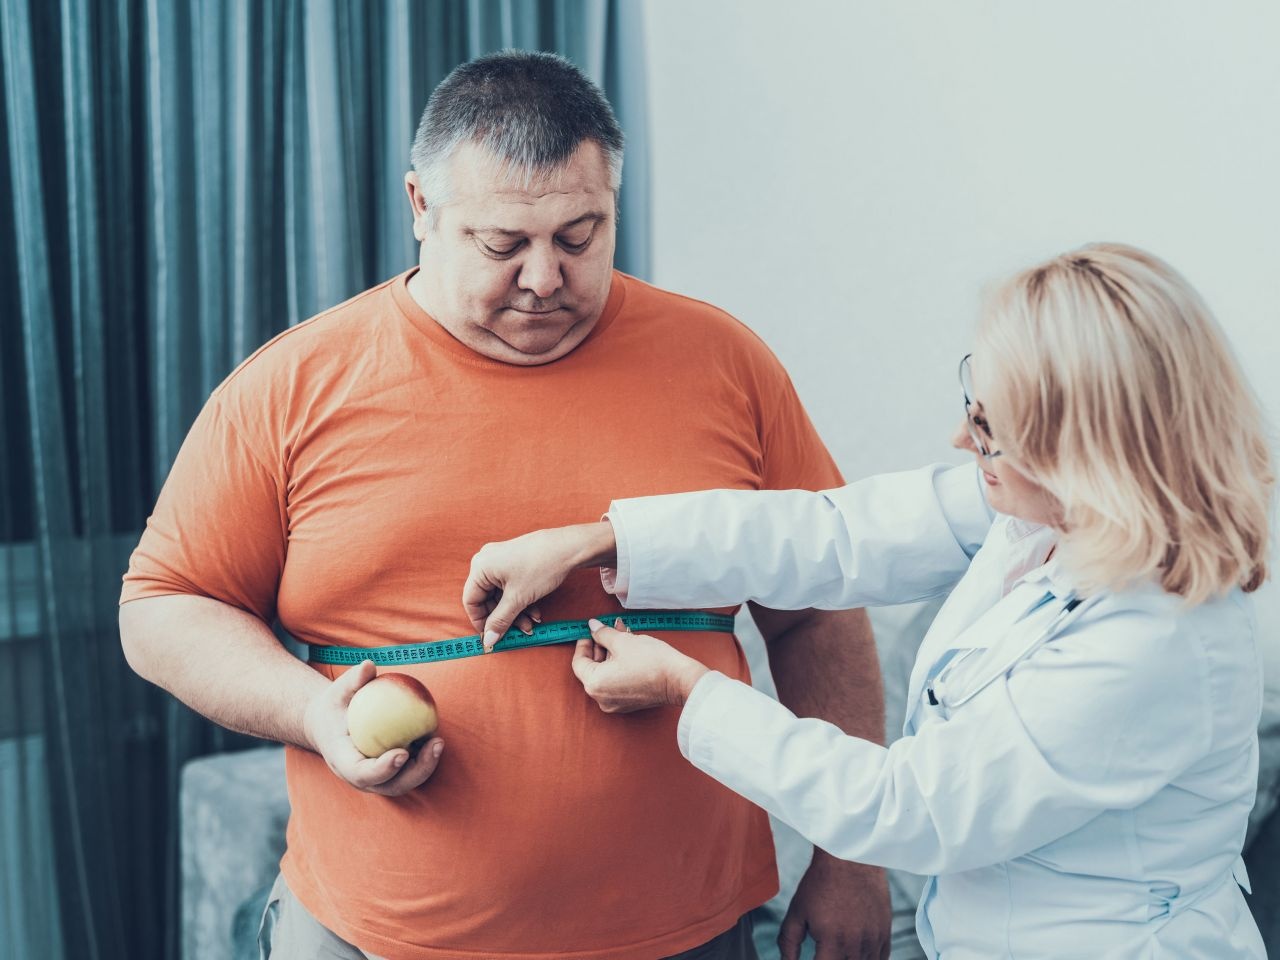 When is it time for weight loss surgery?